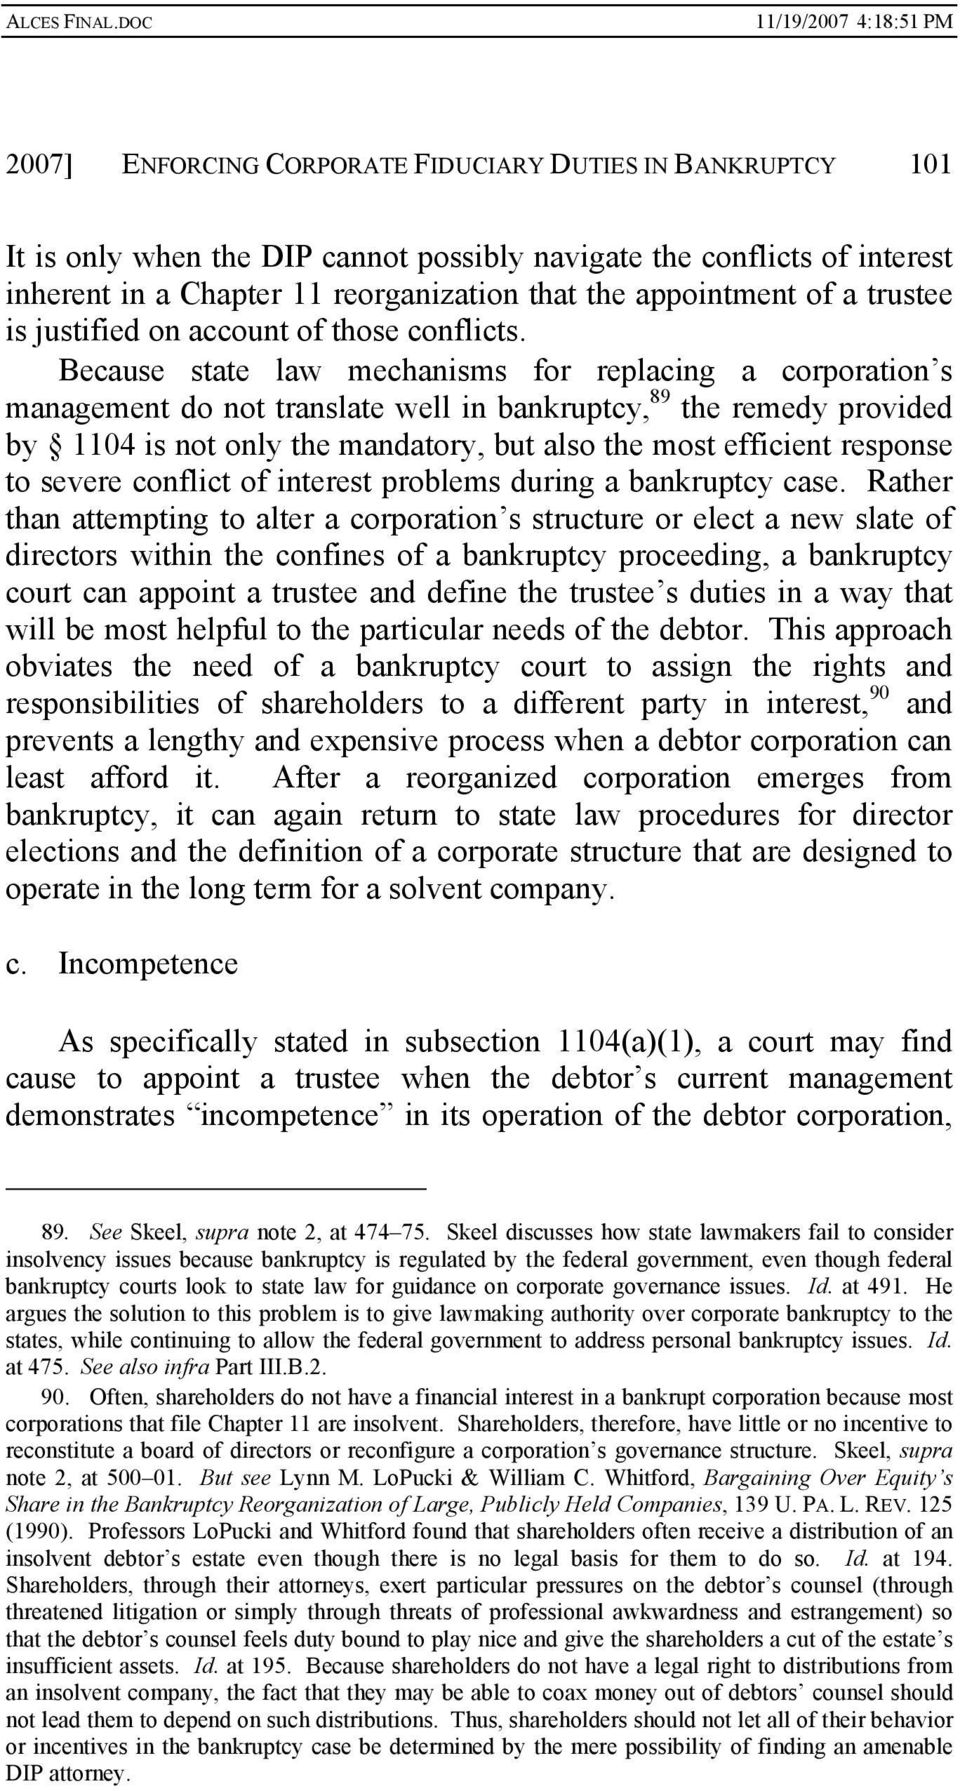 Because state law mechanisms for replacing a corporation s management do not translate well in bankruptcy, 89 the remedy provided by 1104 is not only the mandatory, but also the most efficient